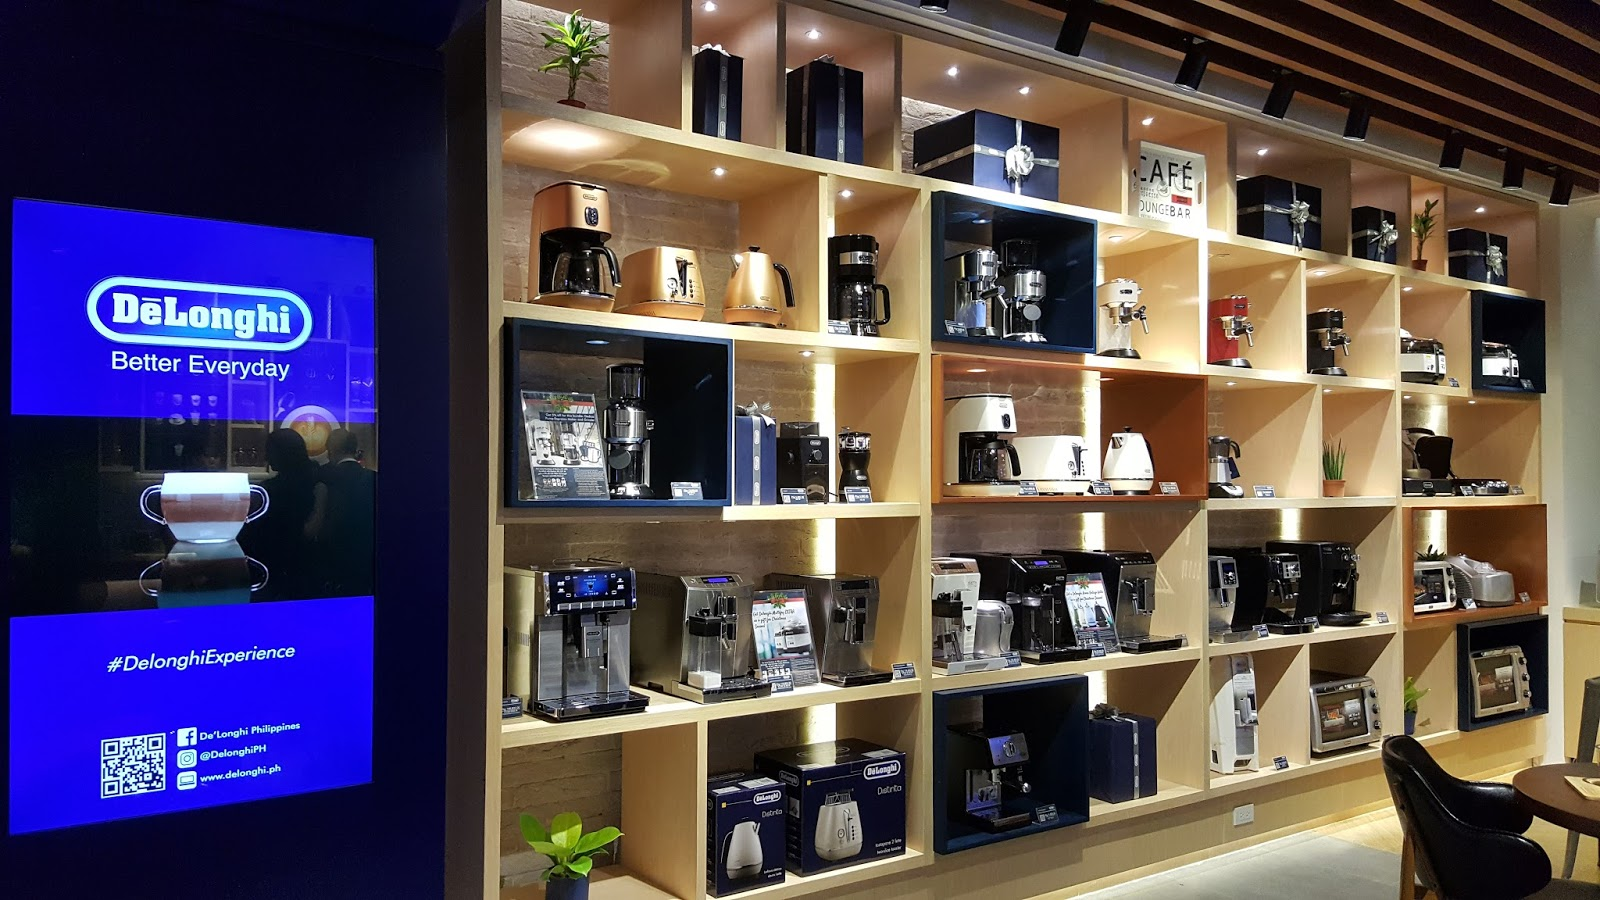 Manila fashion observer the first delonghi concept store in manila it used to be that small kitchen appliances were something that you use on the countertop and then stored right after using but delonghi changed that for solutioingenieria Image collections